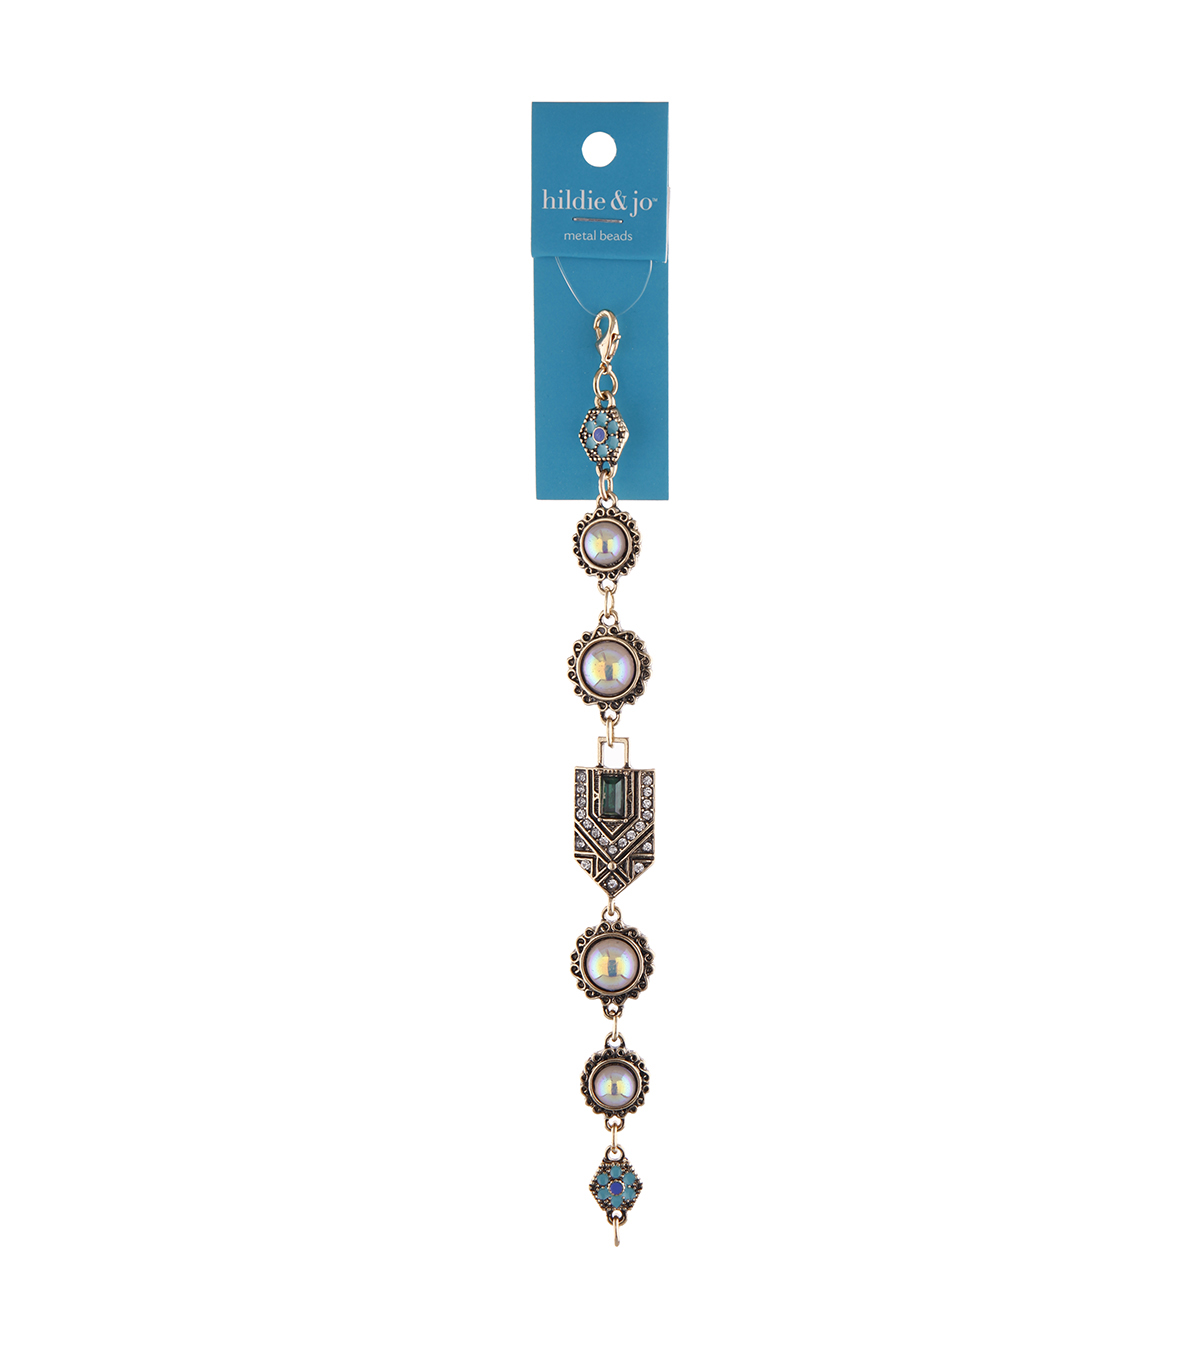 hildie & jo 6.7\u0027\u0027 Antique Metal Strung Beads